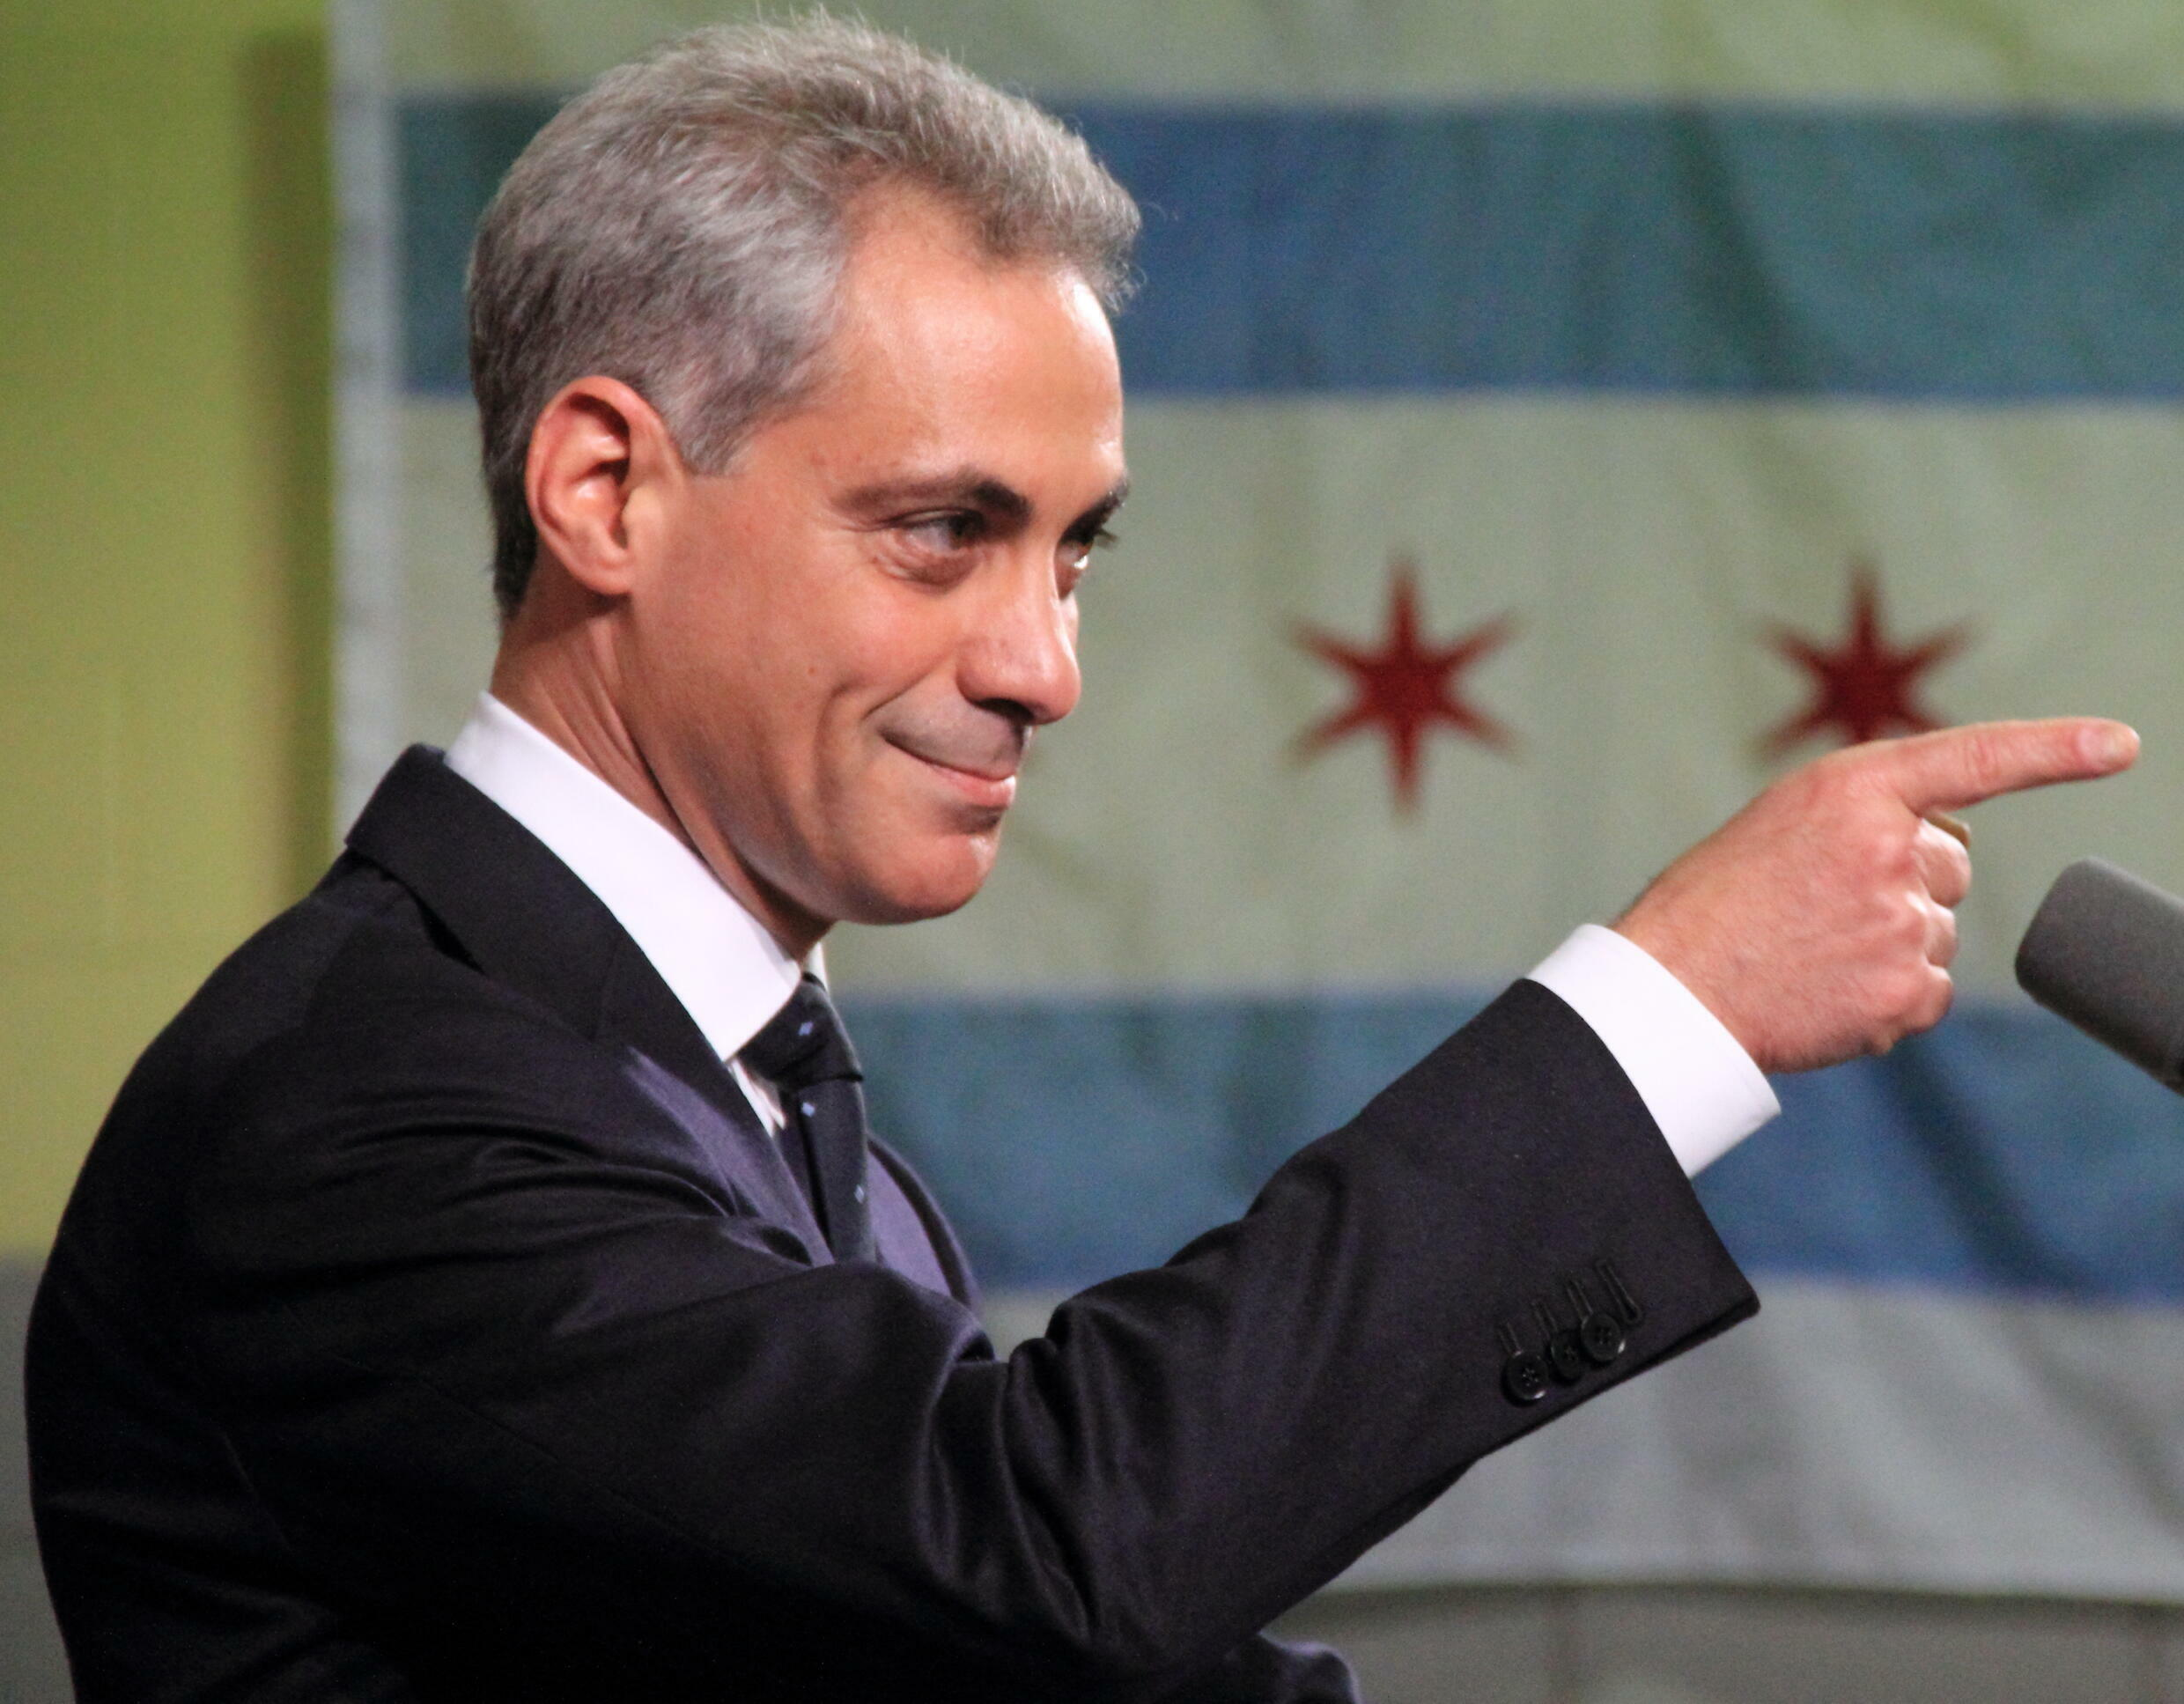 Rahm_Emanuel,_Pointing,_With_Chicago_Flag_in_Background_(cropped)